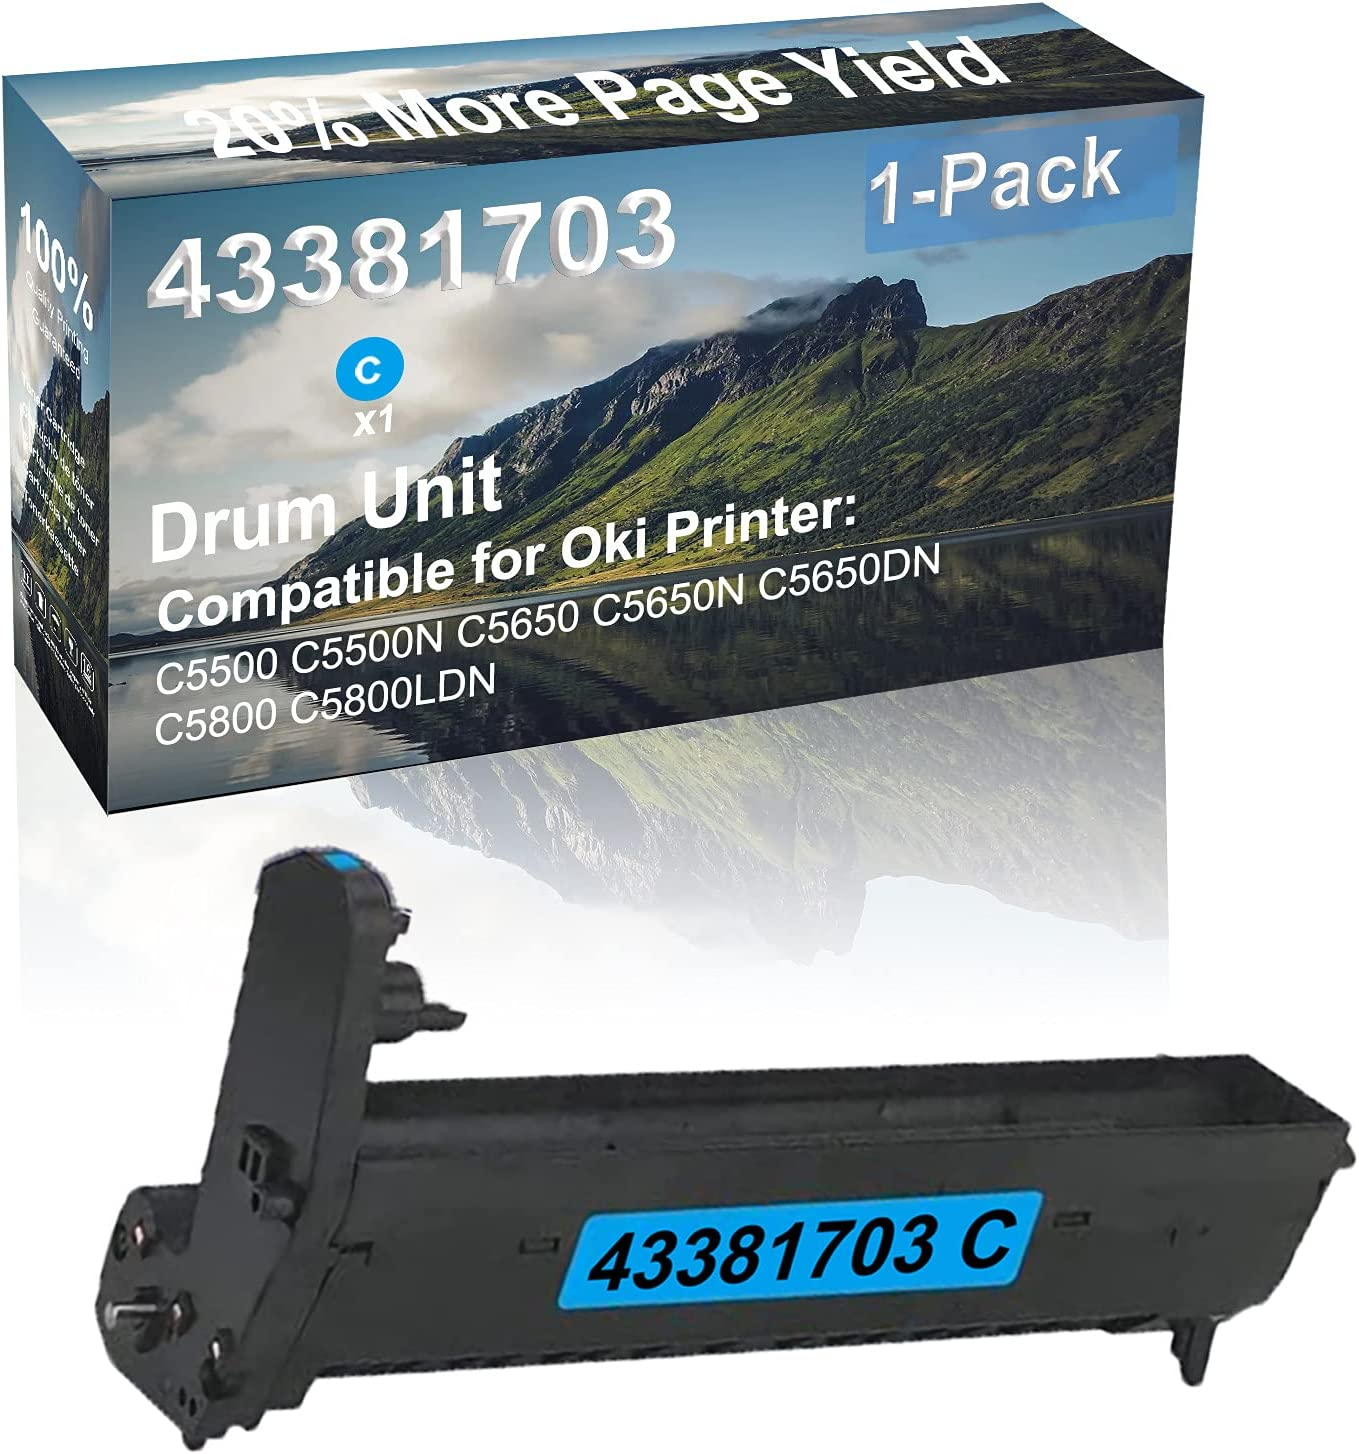 1-Pack (Cyan) Compatible C5650N C5650DN Printer Drum Kit High Capacity Replacement for Oki 43381703 Drum Unit